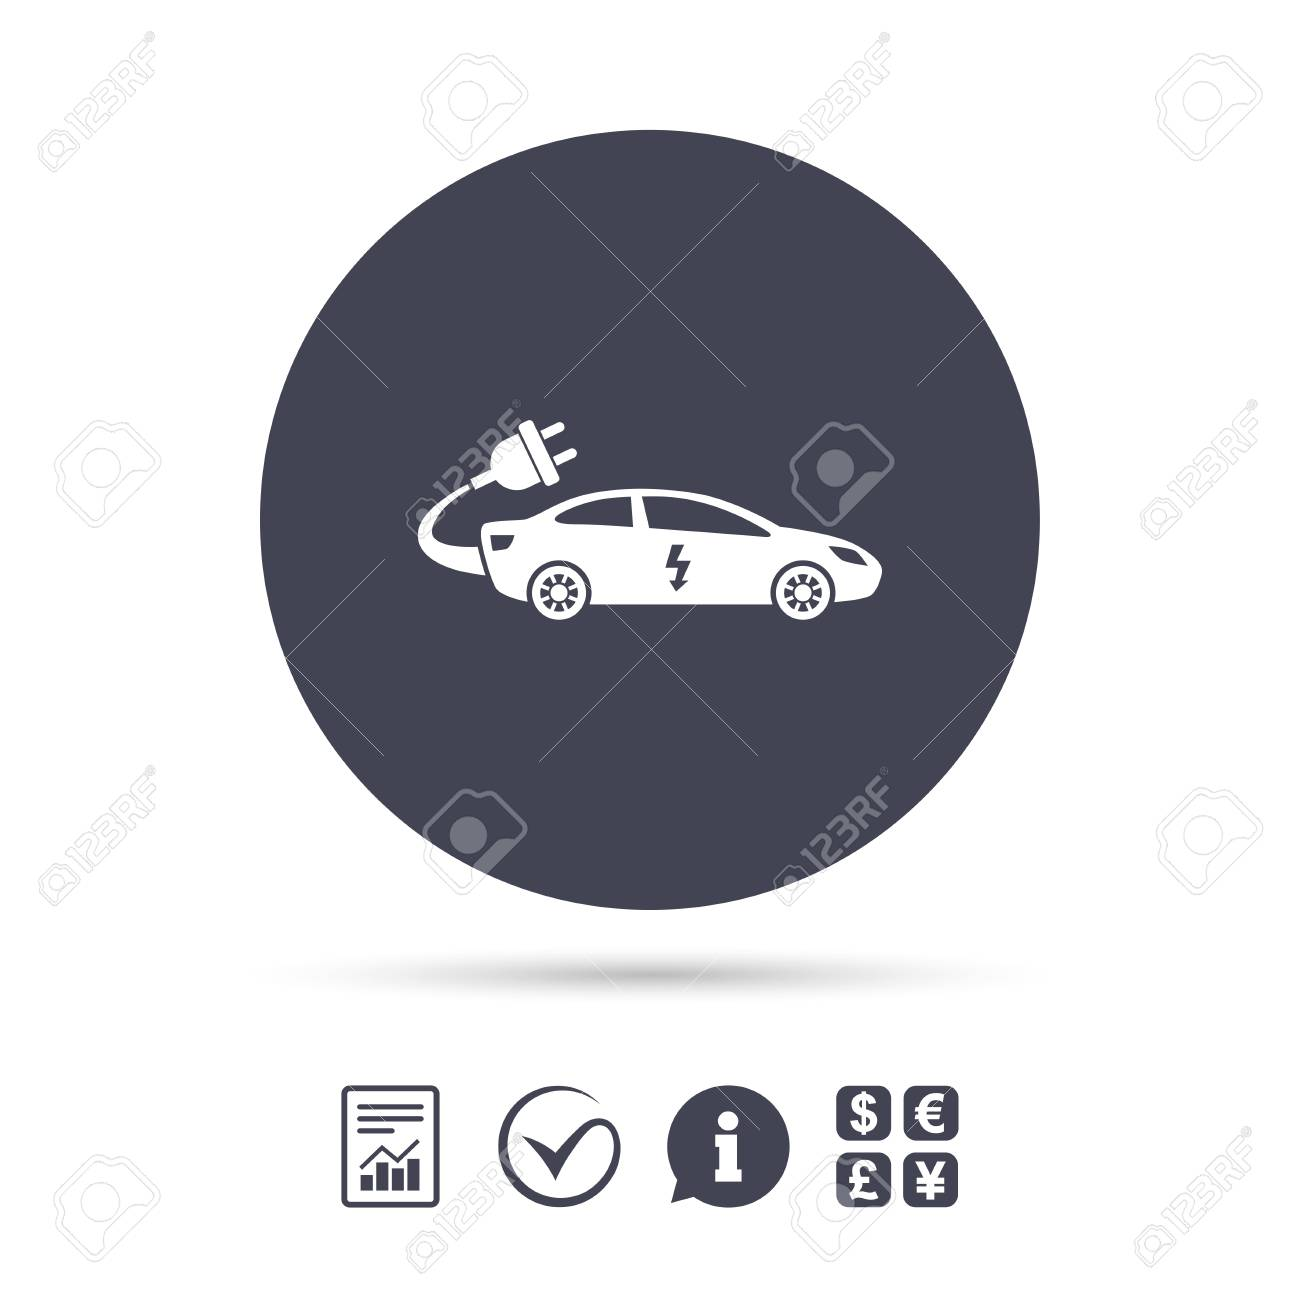 hight resolution of electric car sign icon sedan saloon symbol electric vehicle transport report document